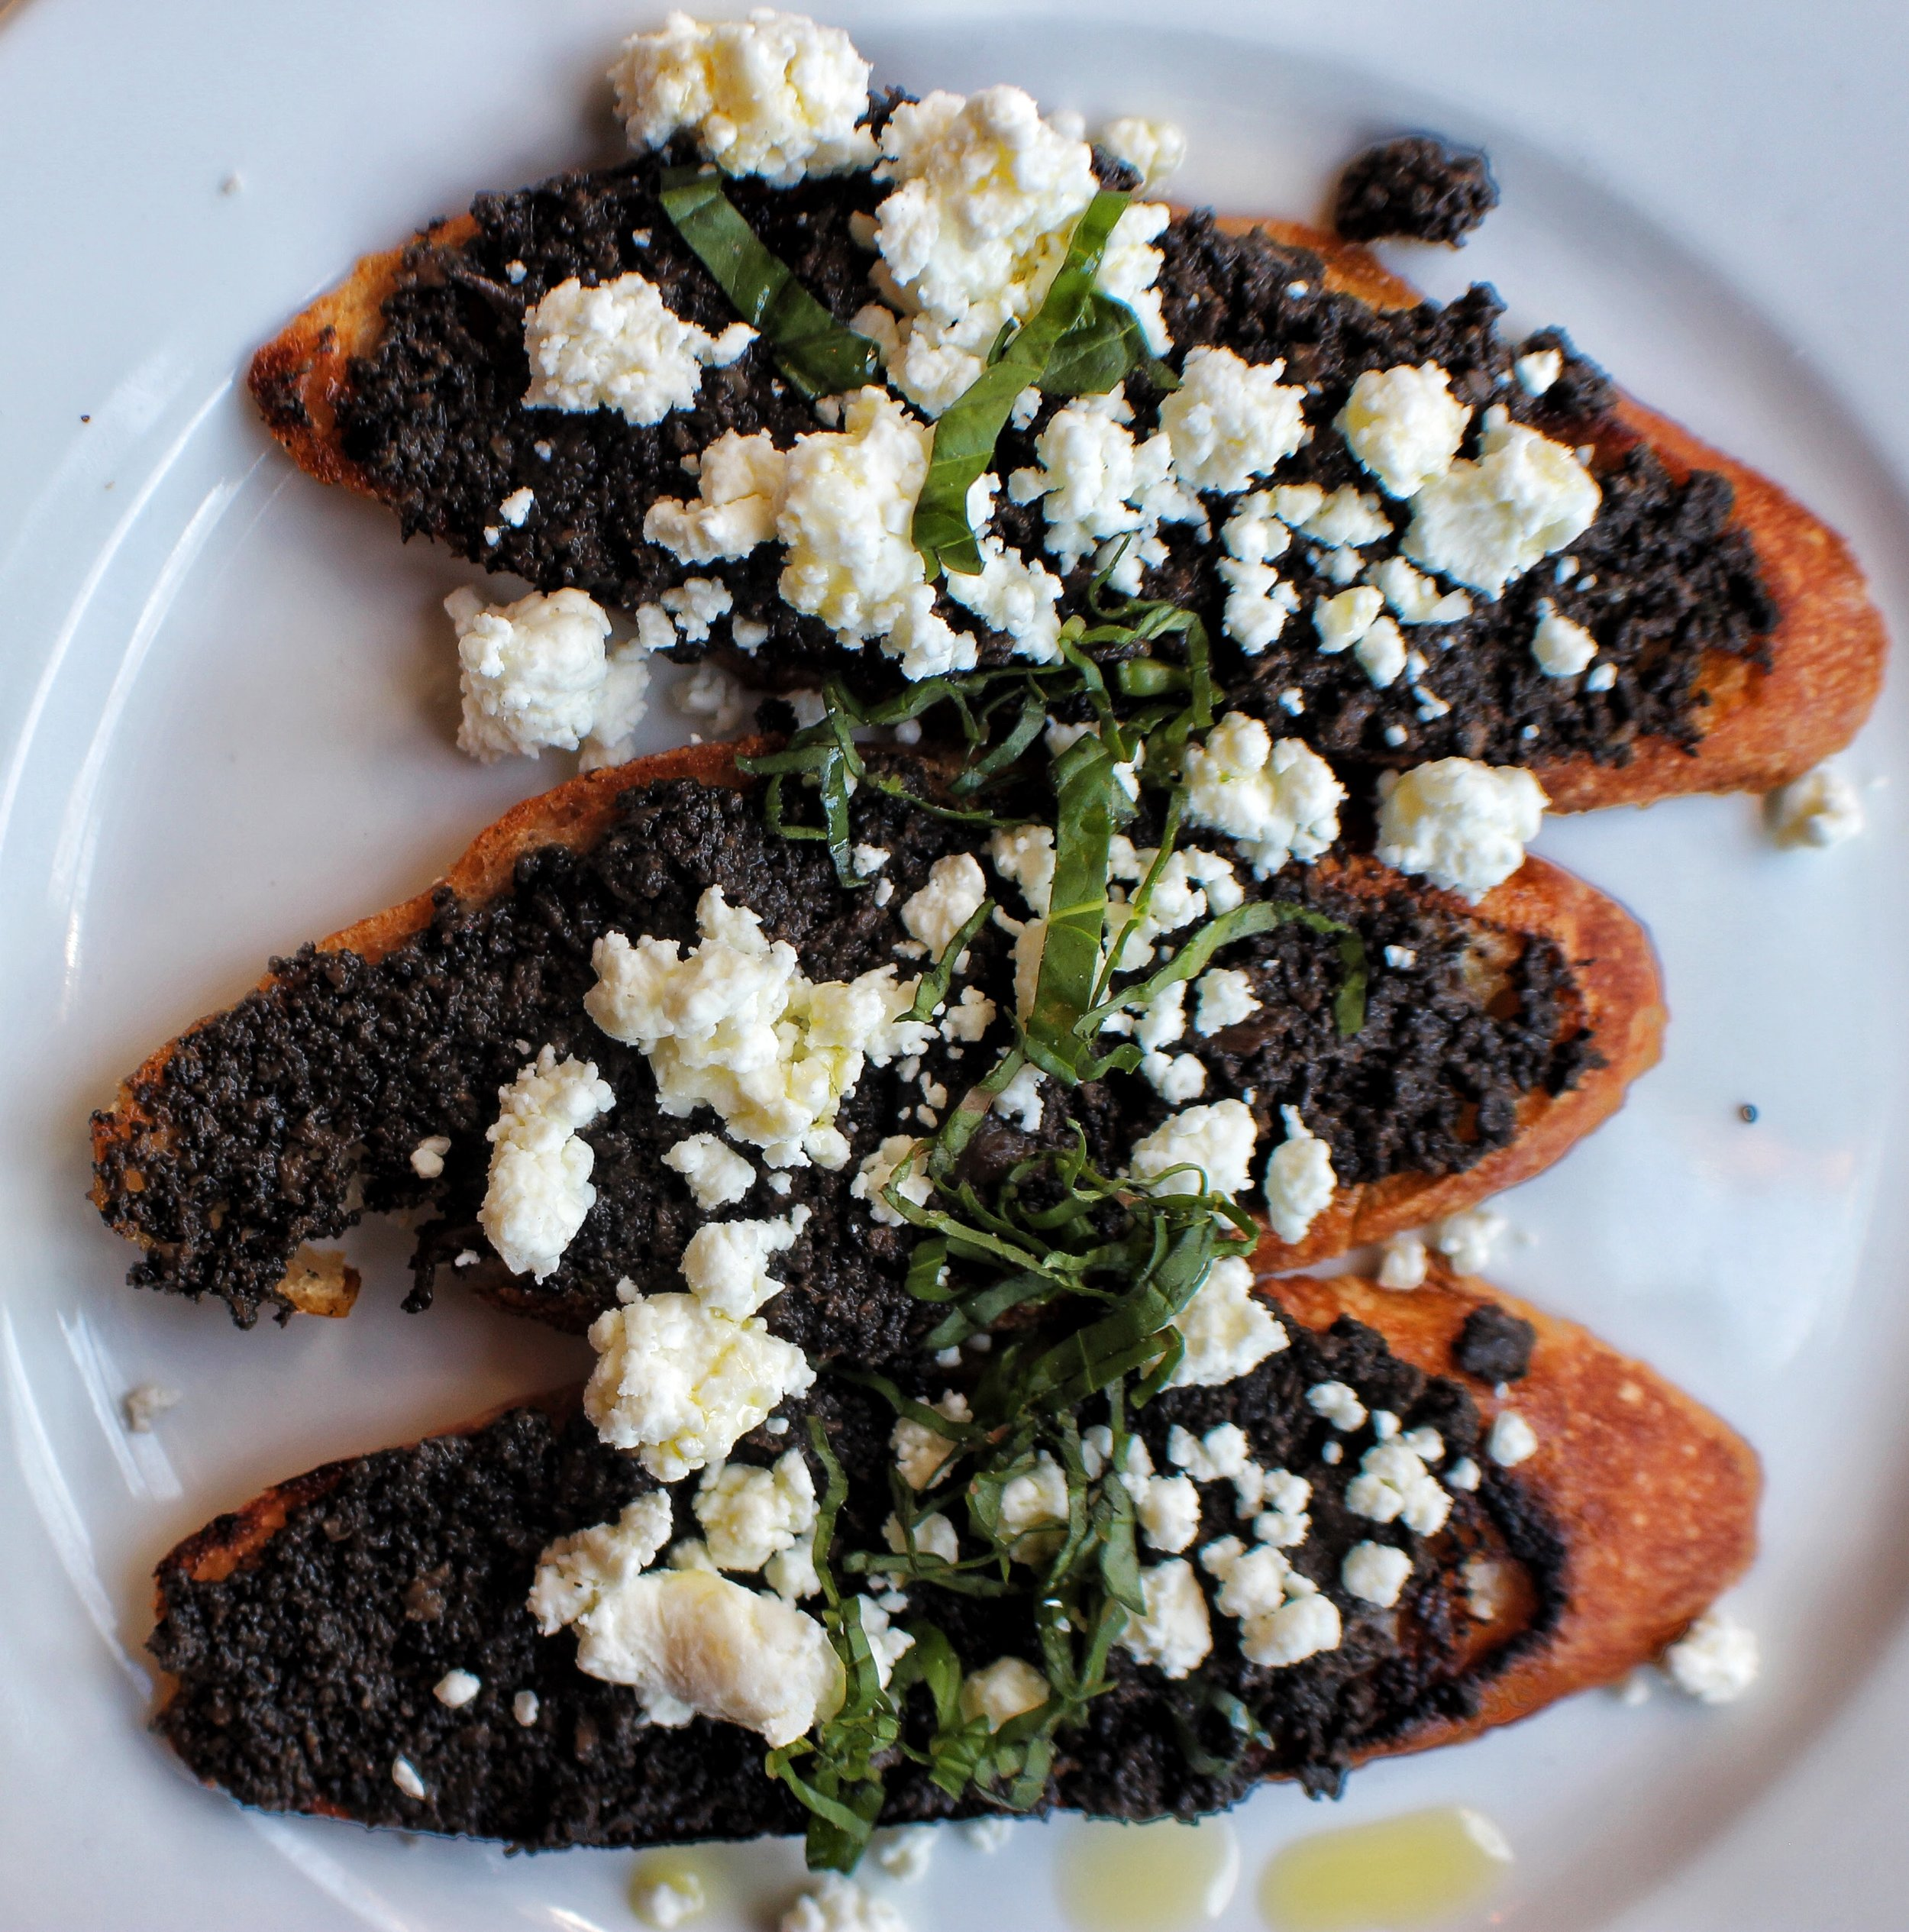 Truffle crostini - chunky truffle salsa topped with goat cheese